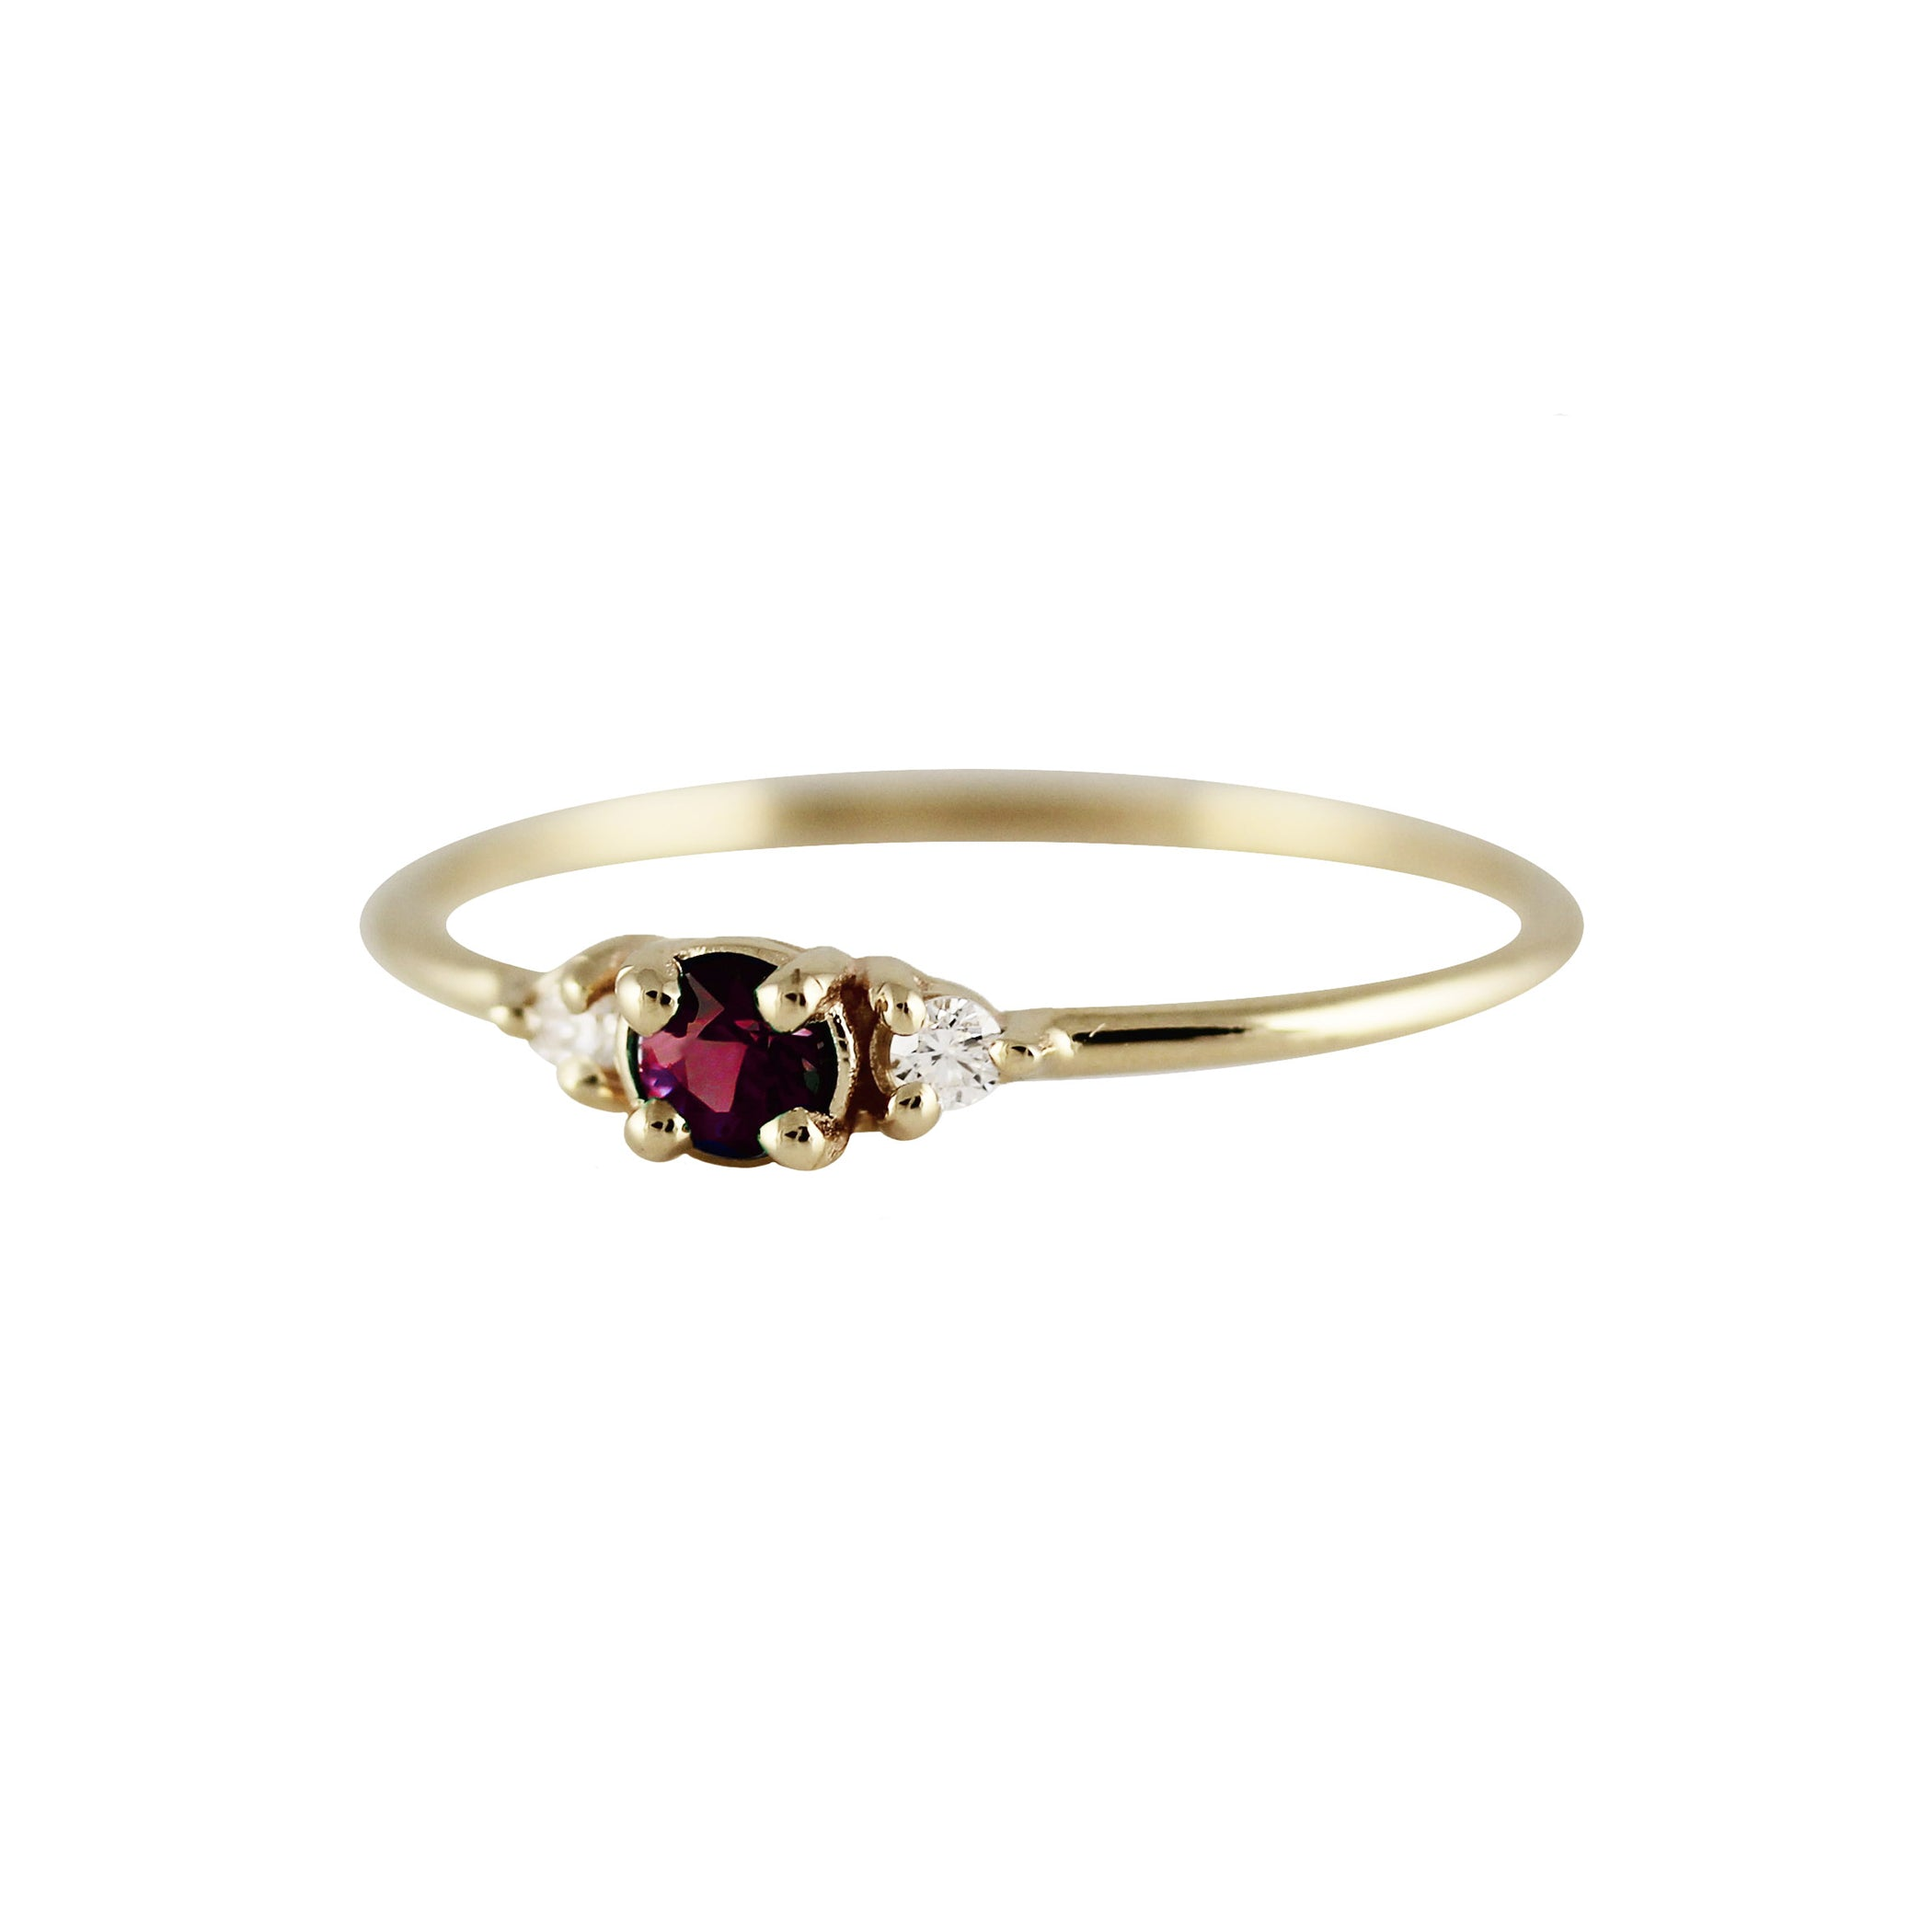 ROUND RUBY WITH SIDE DIAMONDS RING